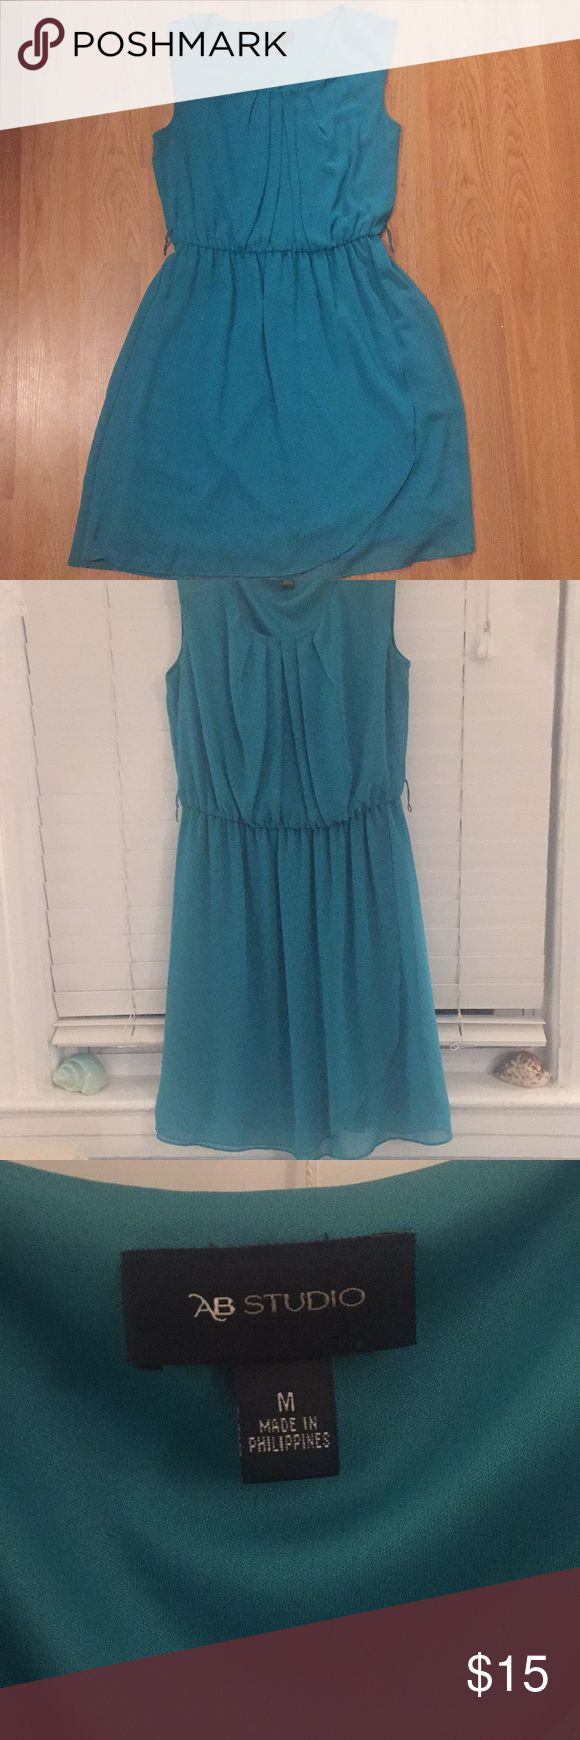 Spring and summer dress This light weight turquoise dress is perfect for summer bbqs or spring days. This dress looks great with a cute belt and boat shoes or sandals. Quick to put together and adorable. Dresses Midi